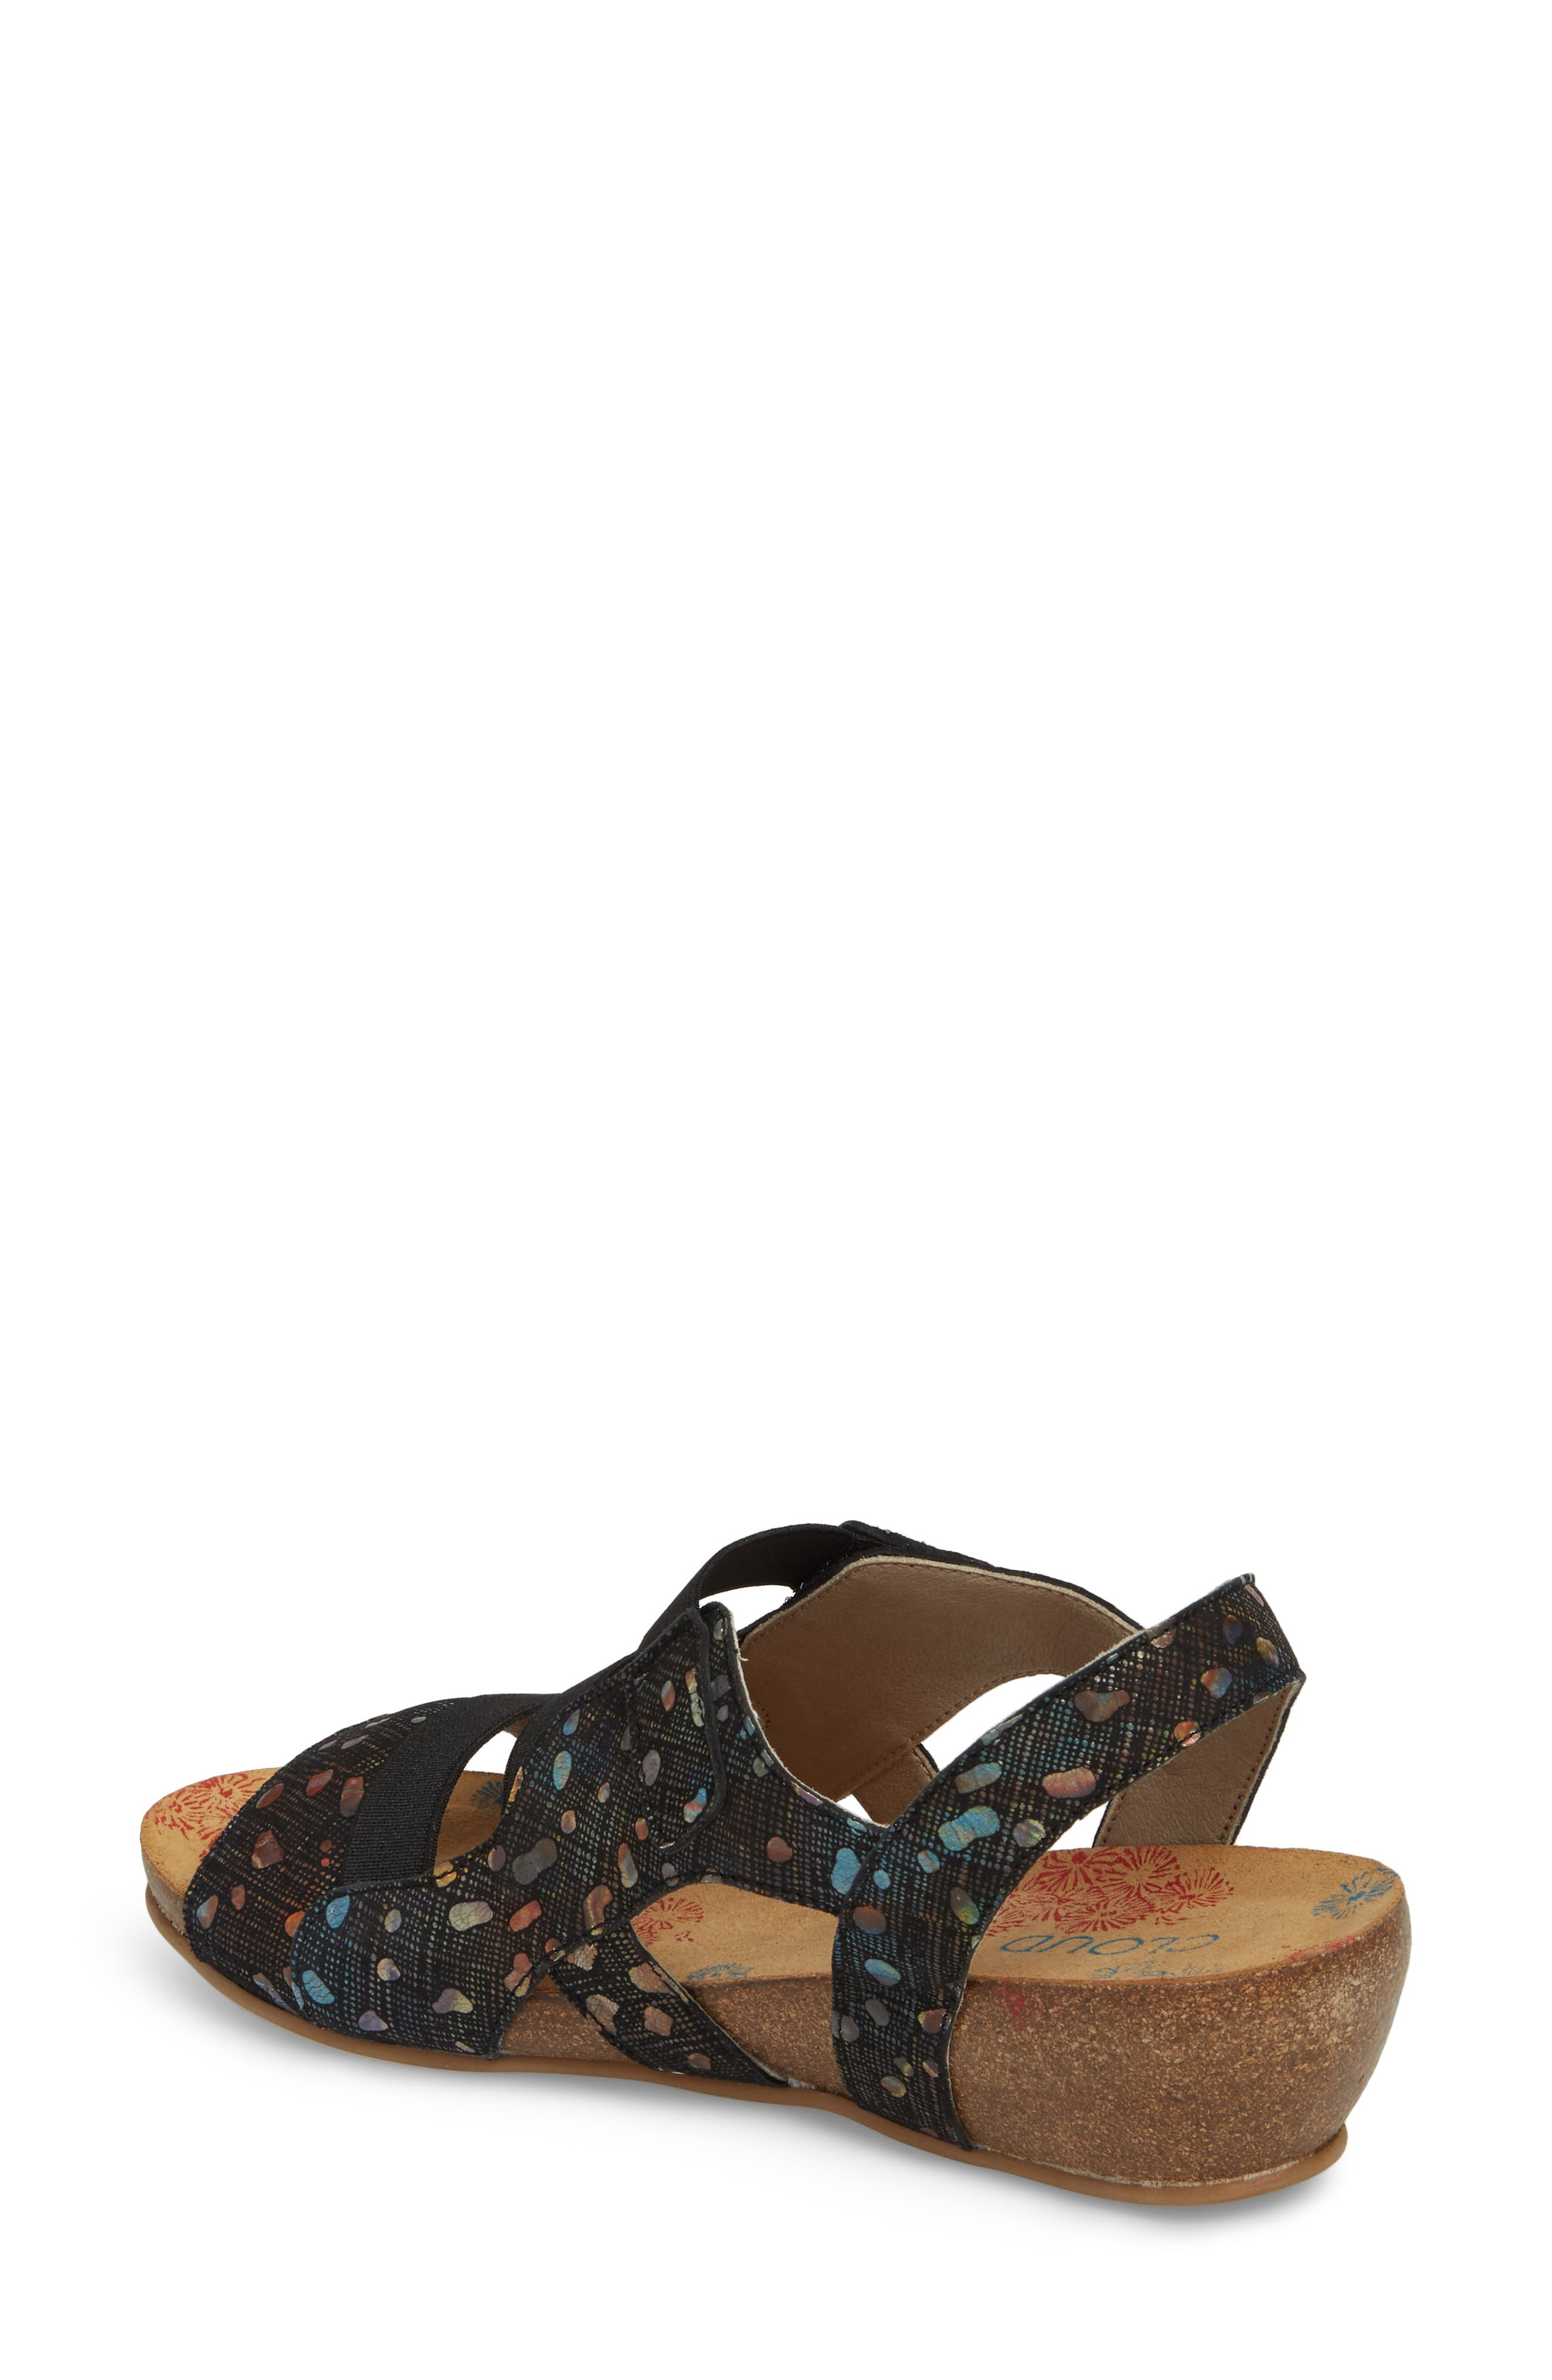 Duffy Wedge Sandal,                             Alternate thumbnail 2, color,                             BUBBLE LEATHER